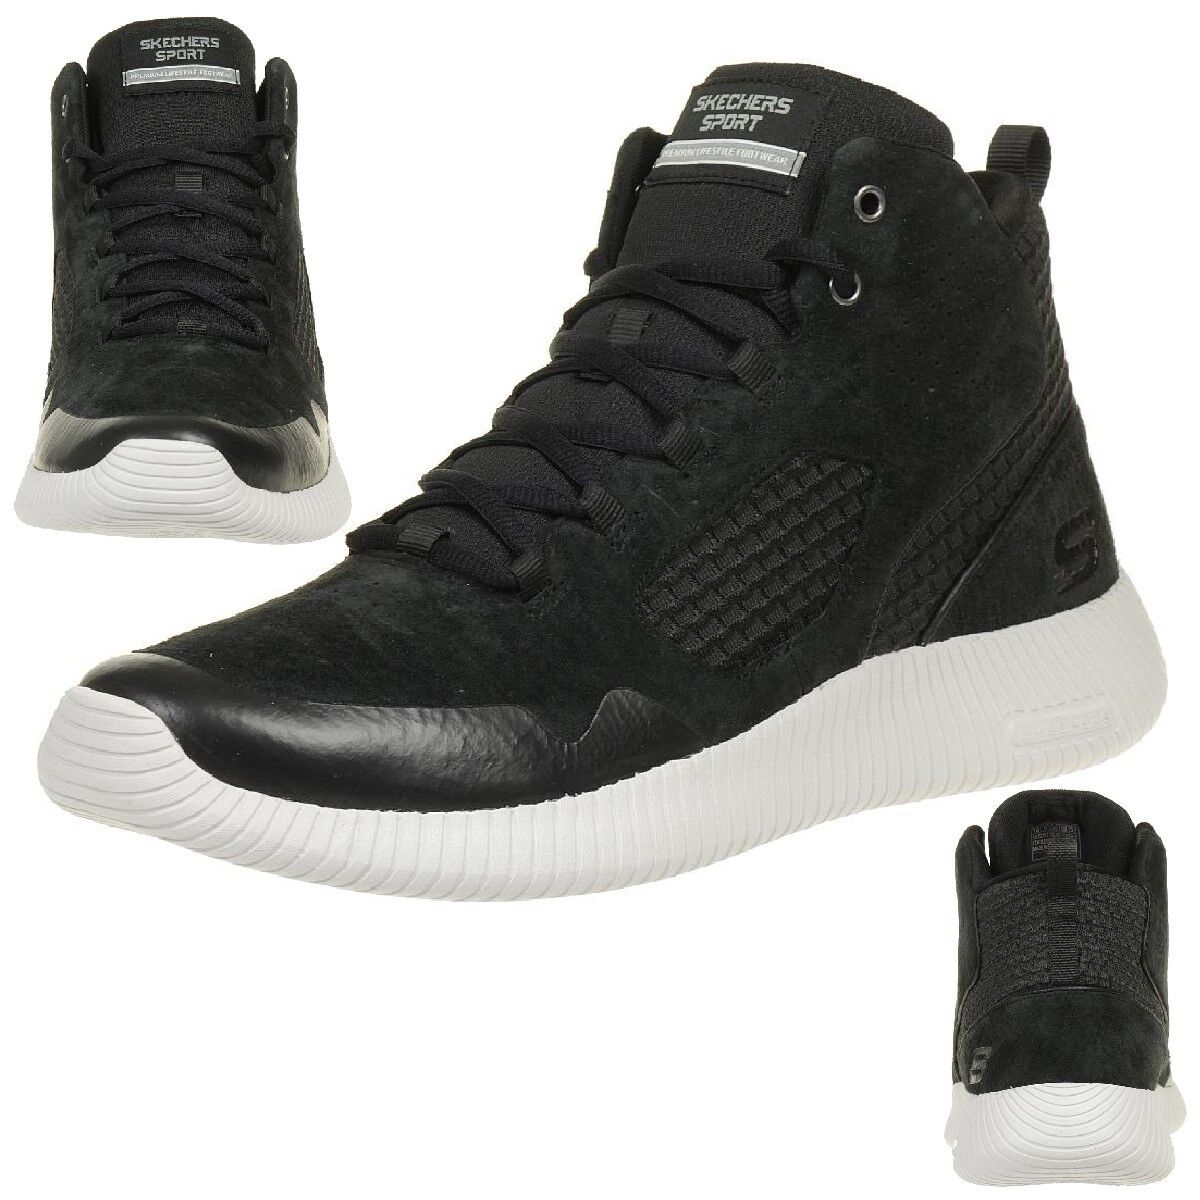 Skechers DEPTH CHARGE DRANGO Herren Sneaker Outdoor Schuhe BLK